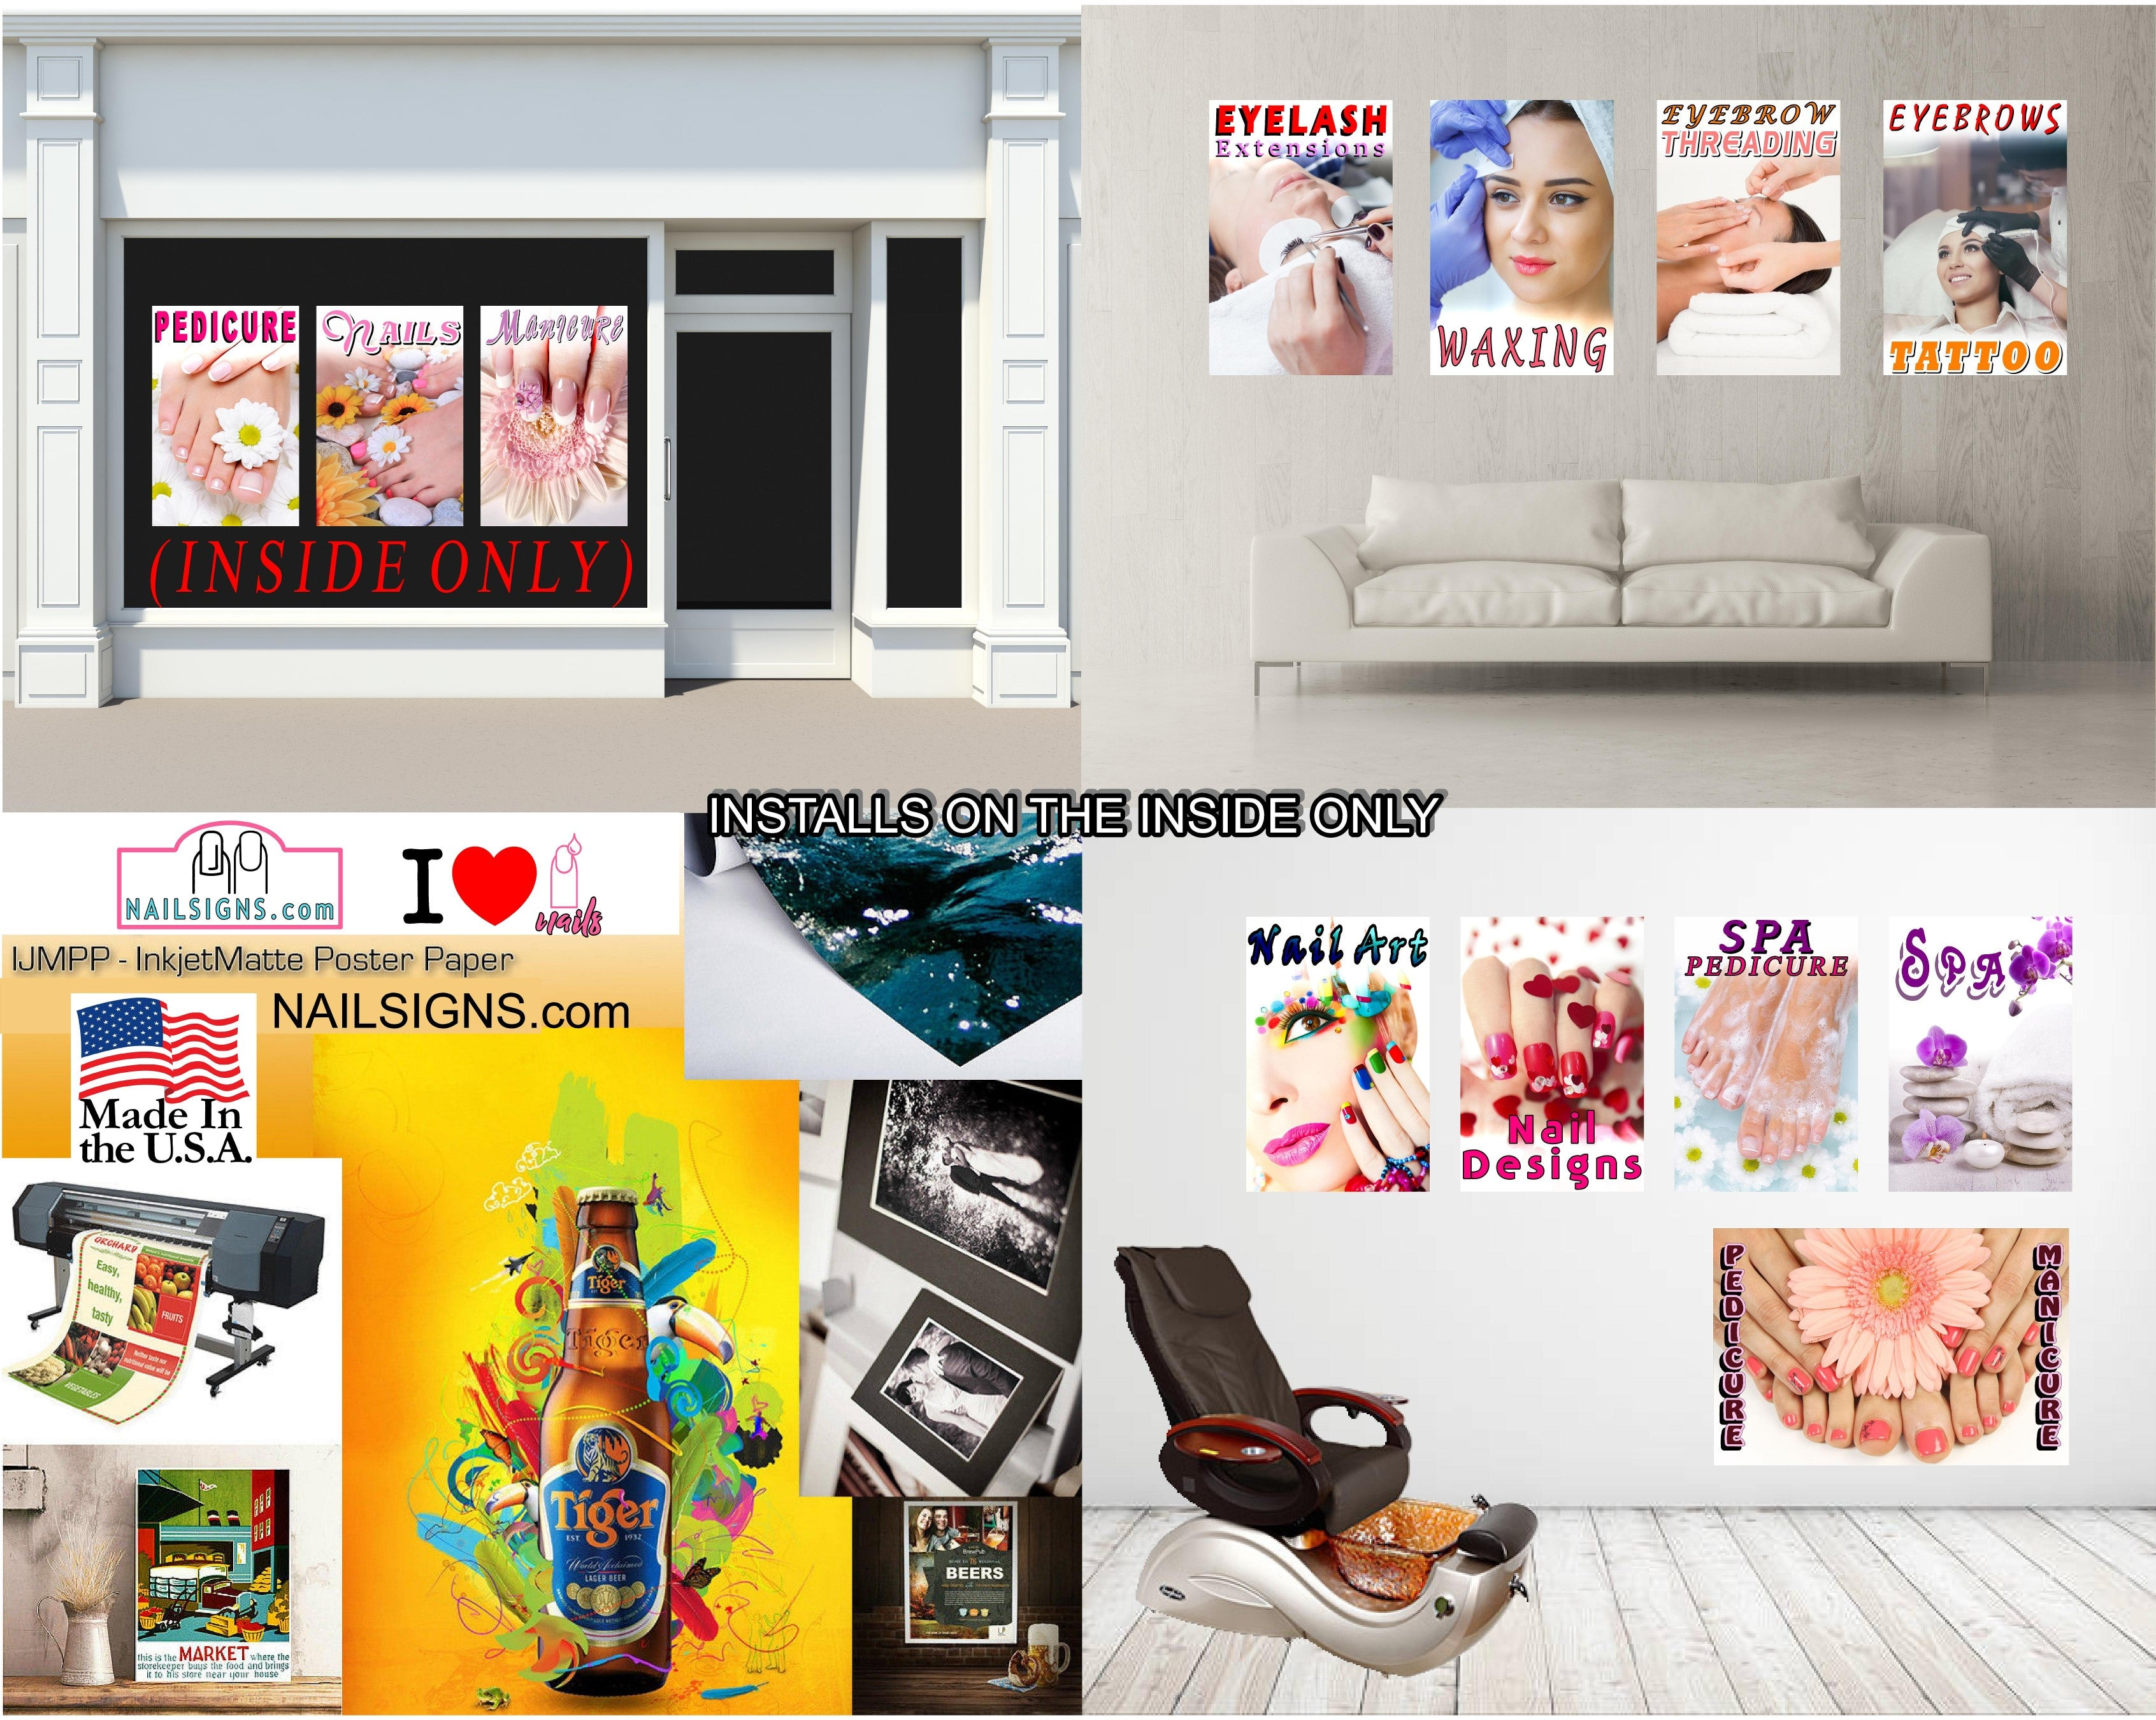 Spa 17 Photo-Realistic Paper Poster Premium Matte Interior Inside Sign Advertising Marketing Wall Window Non-Laminated Vertical